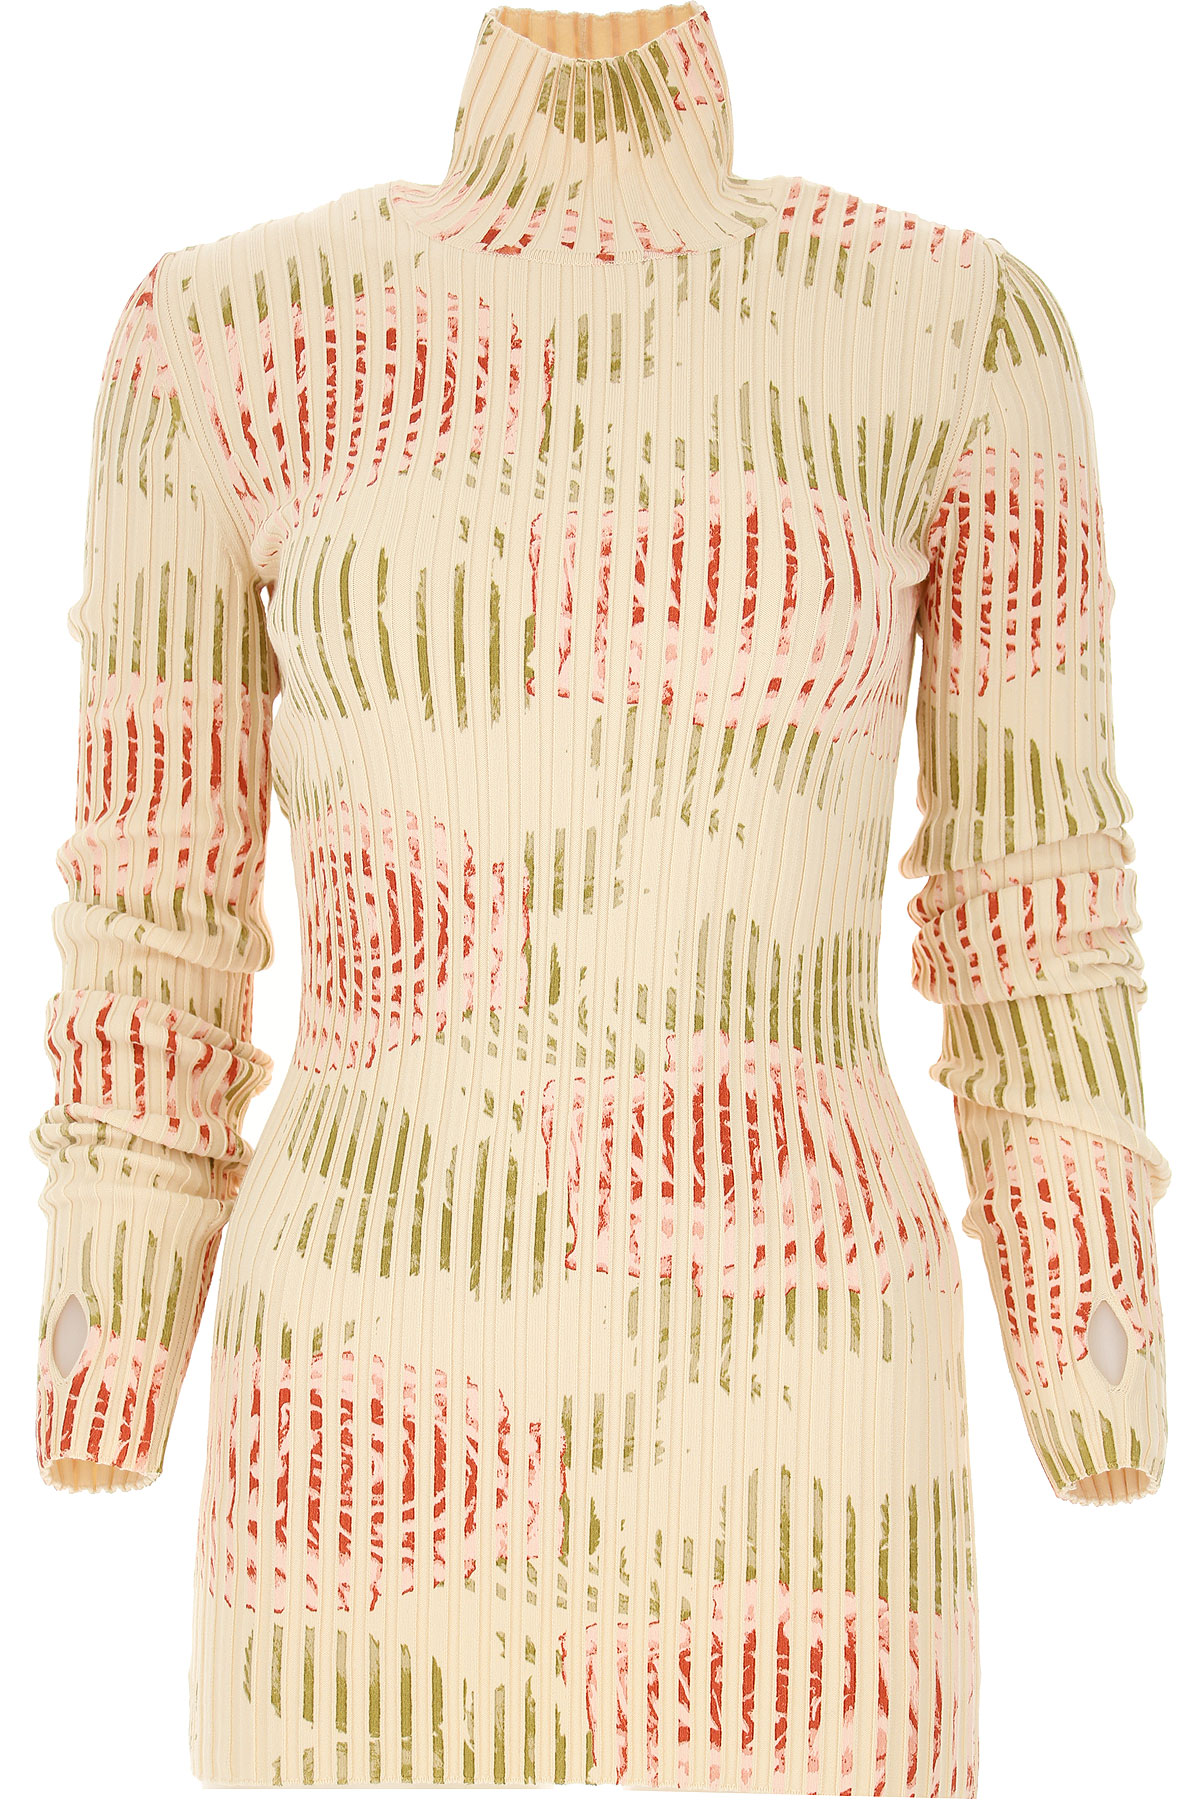 Paco Rabanne Sweater for Women Jumper On Sale, Cream, Cotton, 2019, 4 6